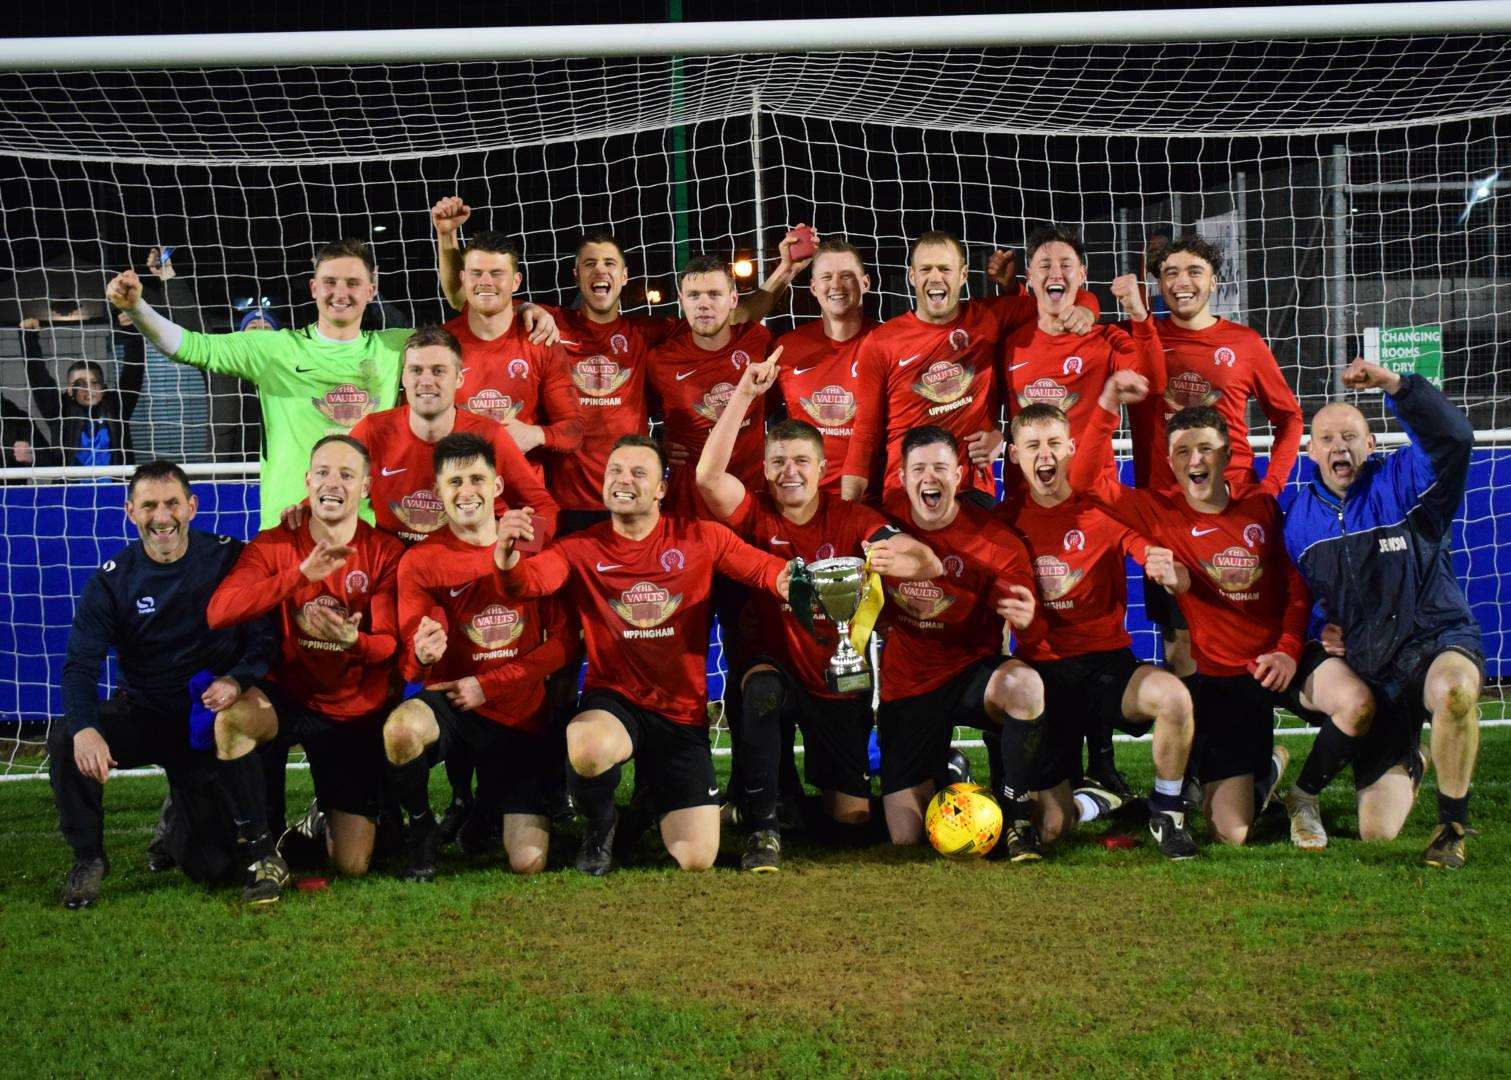 Paul O'Berg (front row, far left) celebrates with his Uppingham team after their cup final success on Tuesday night. (7625023)